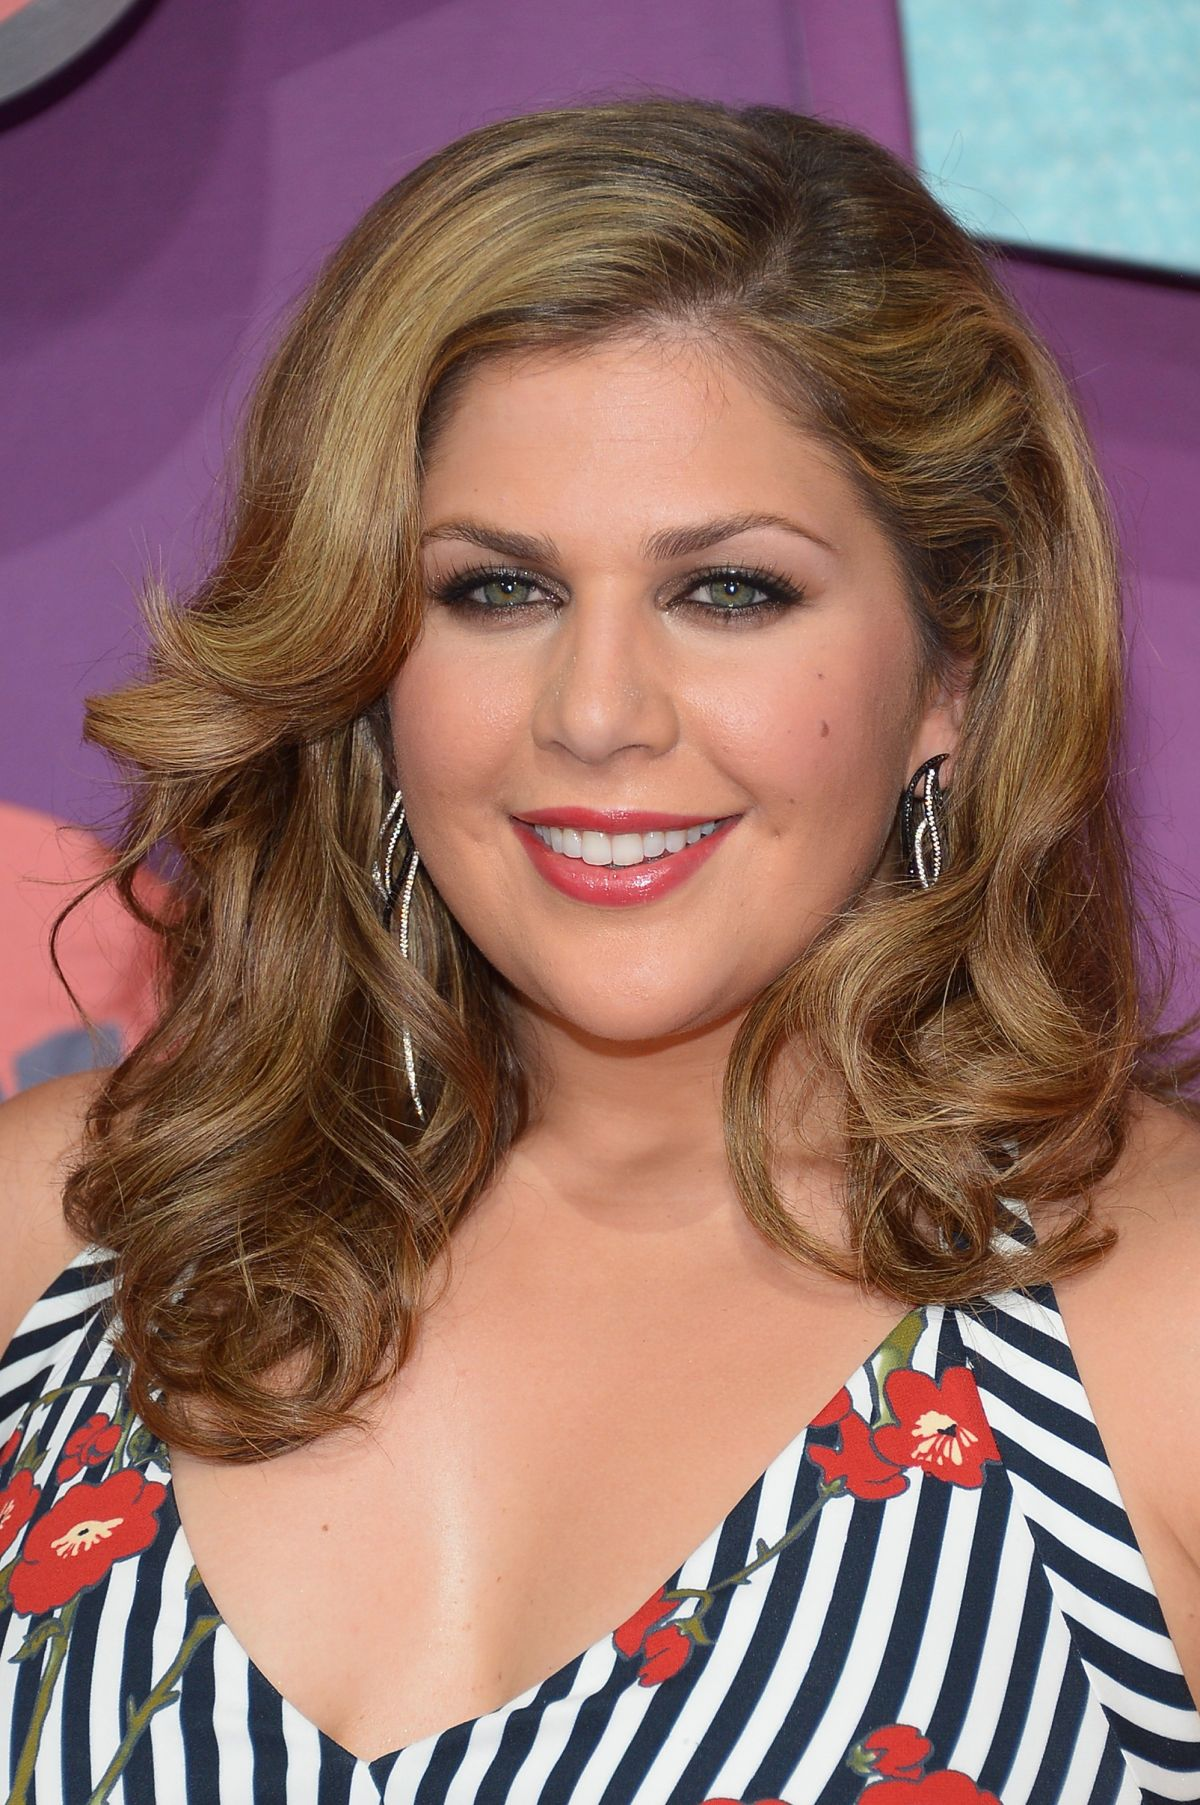 HILLARY SCOTT at 2014 CMT Music Awards in Nashville